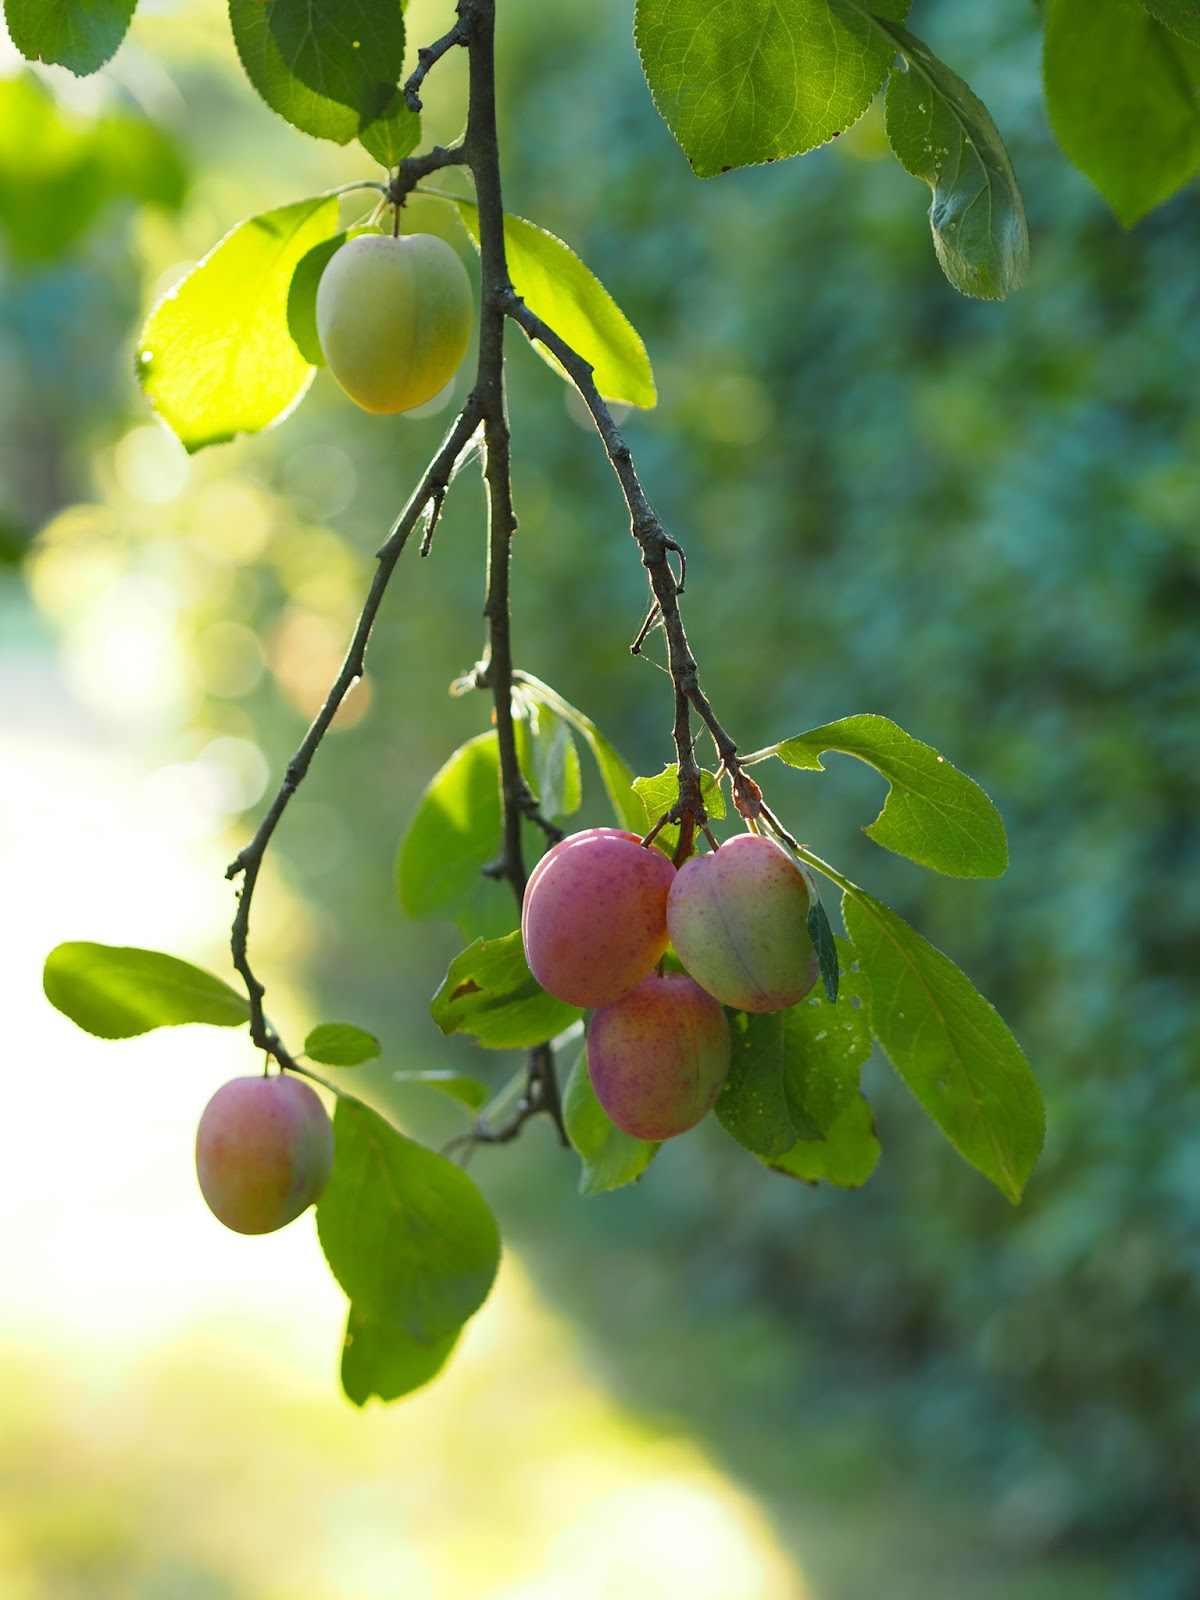 Ripe Plums on the Tree